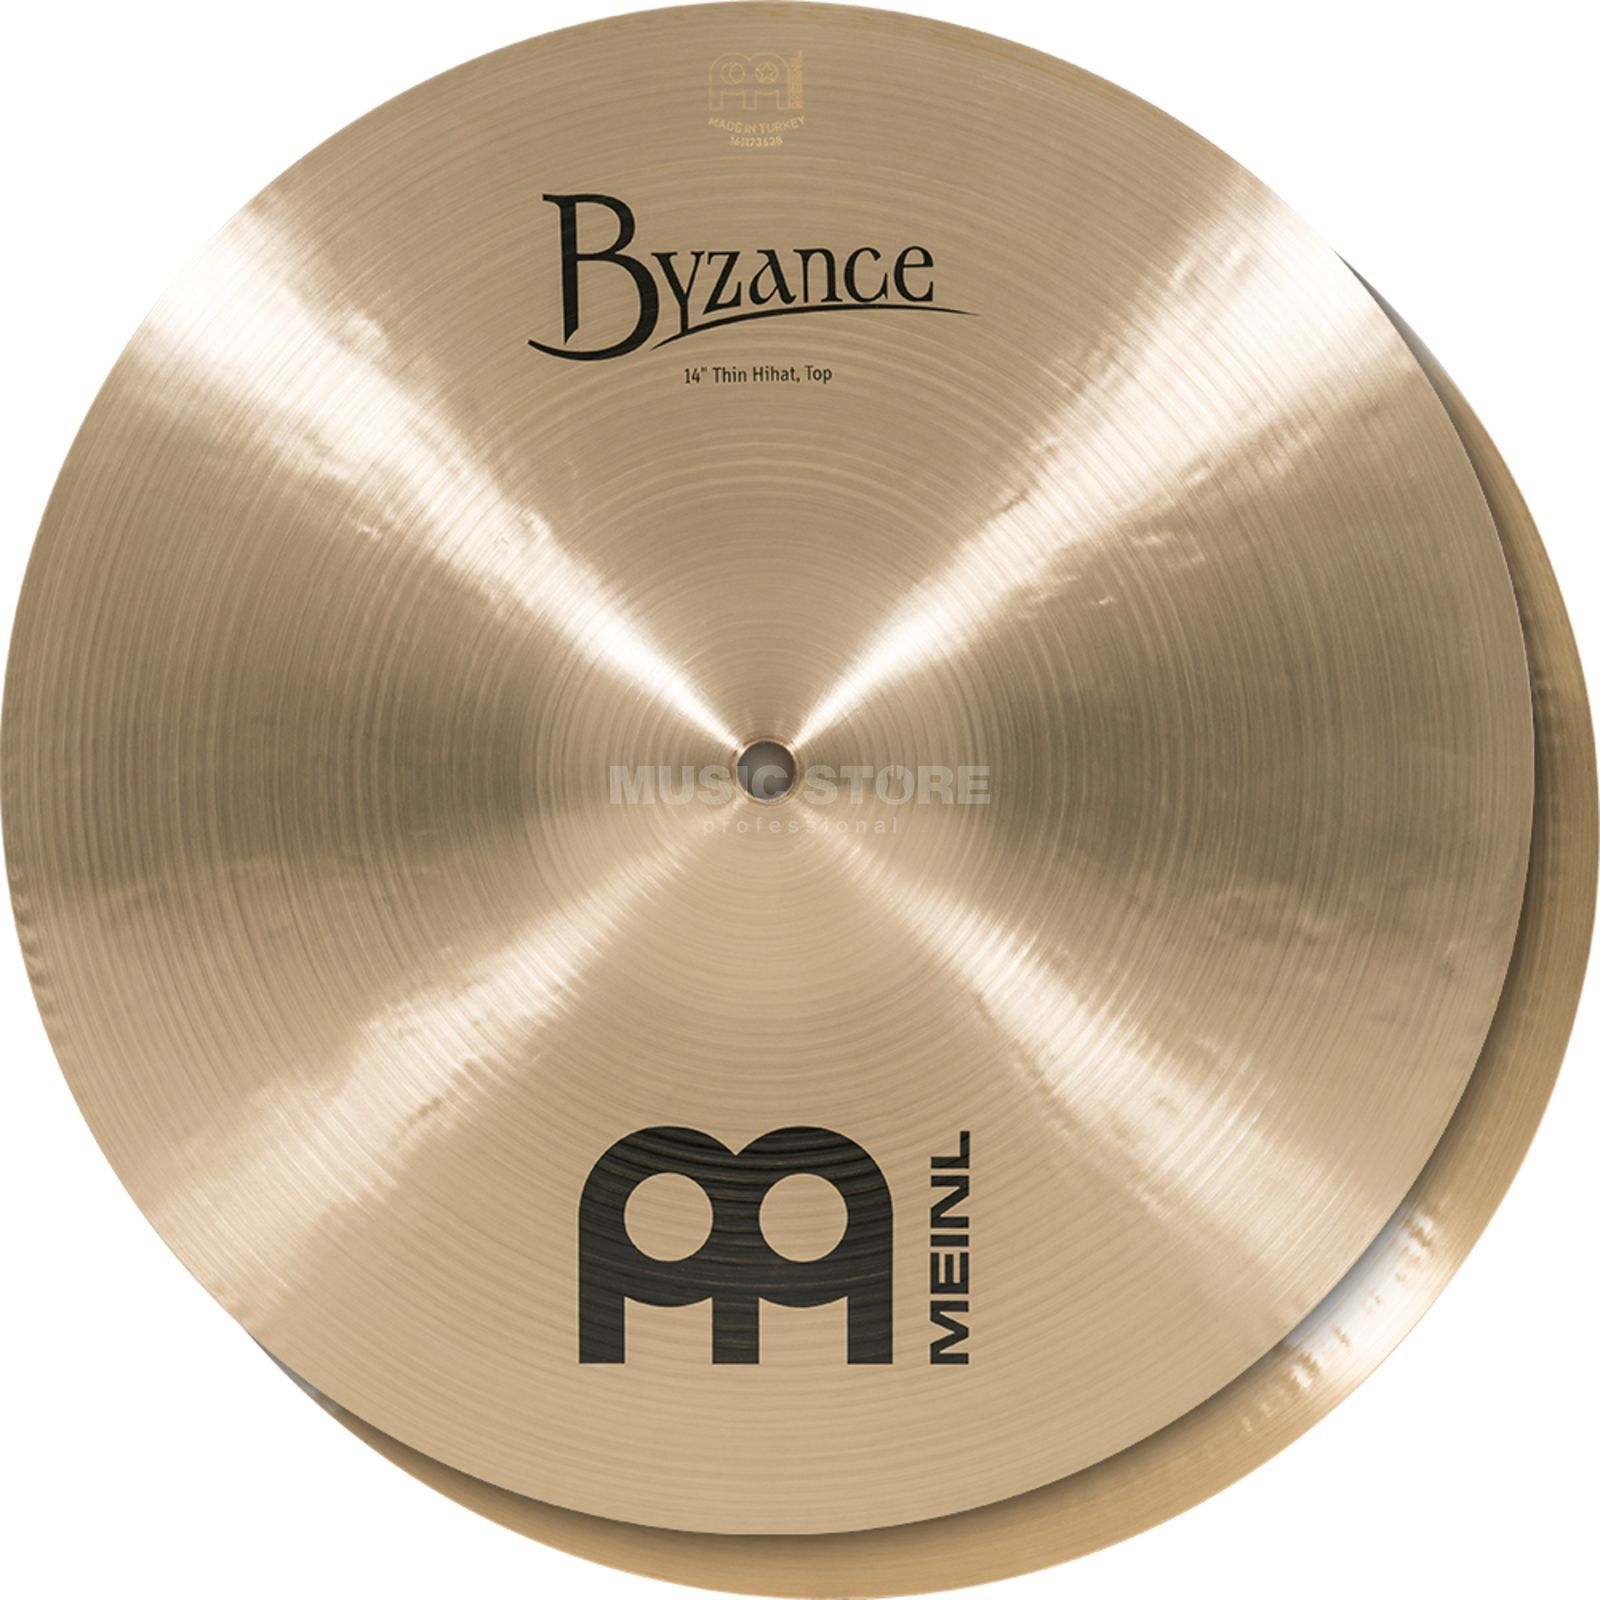 "Meinl Byzance Thin HiHat 14"", B14TH, Traditional Finish Product Image"